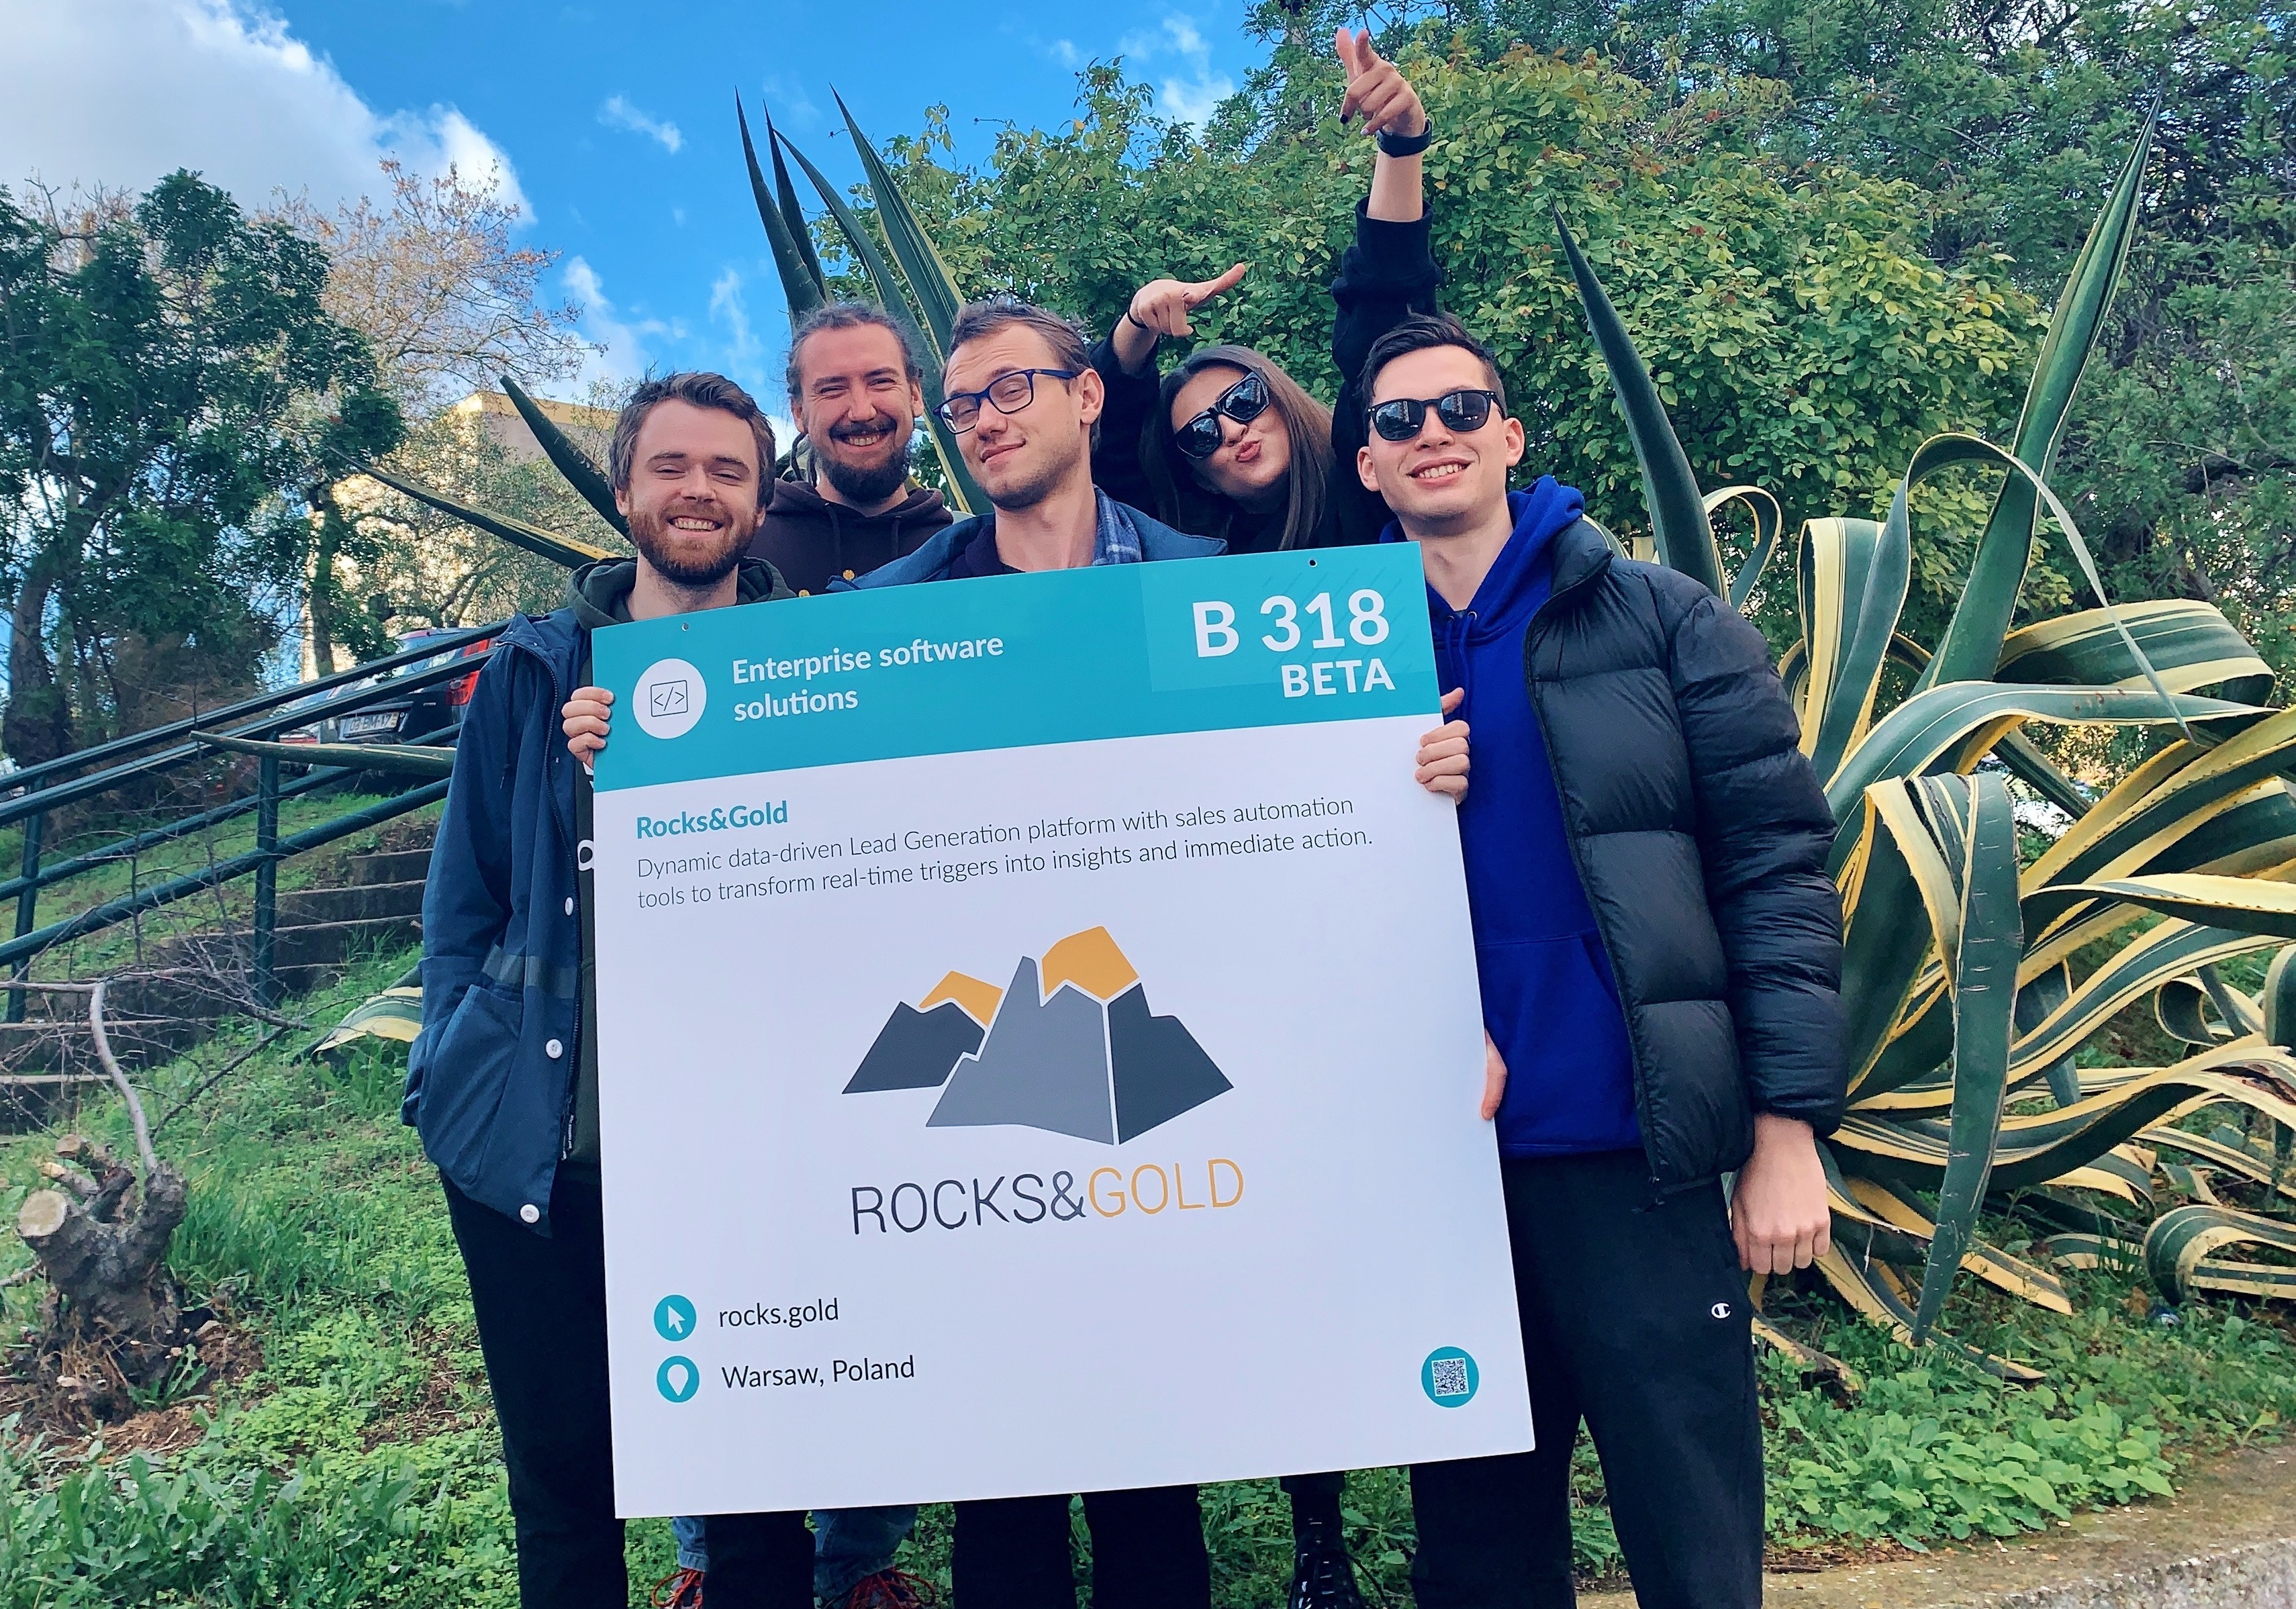 Team image from WebSummit 2019